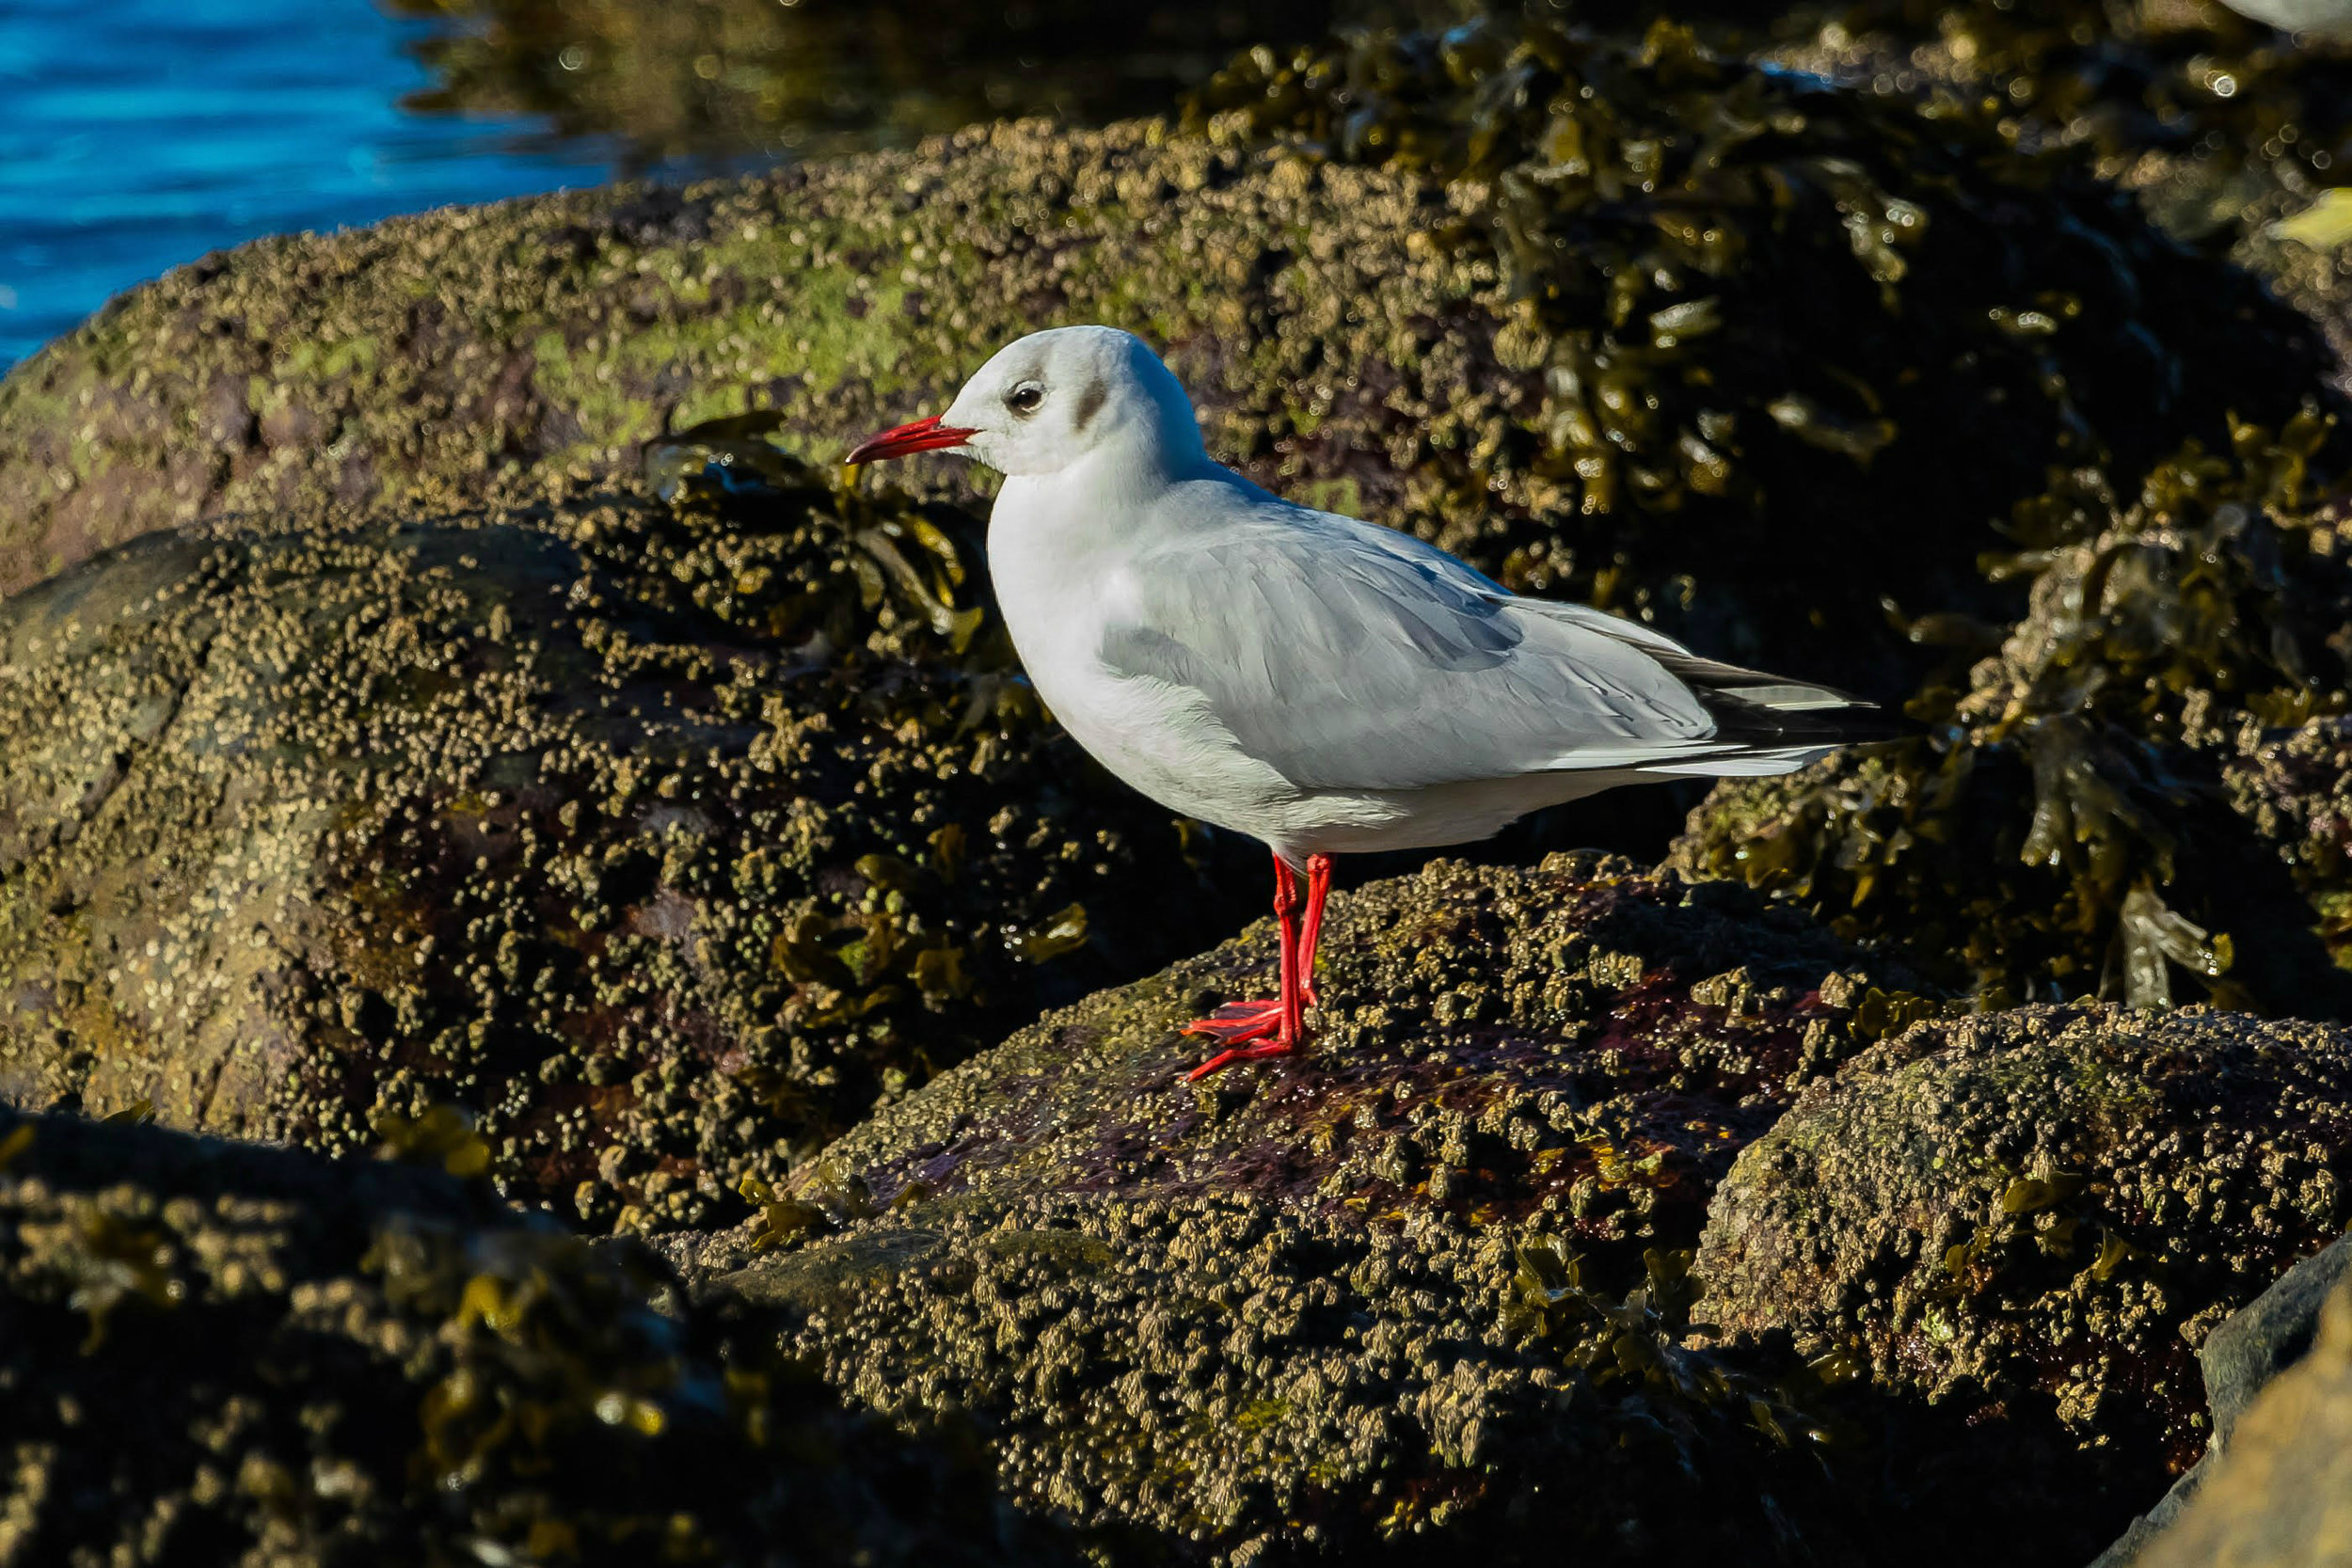 Rare Black Headed Gull on the sea wall at Stanley Park, Vancouver, Canada. Photo by Melissa Hafting.